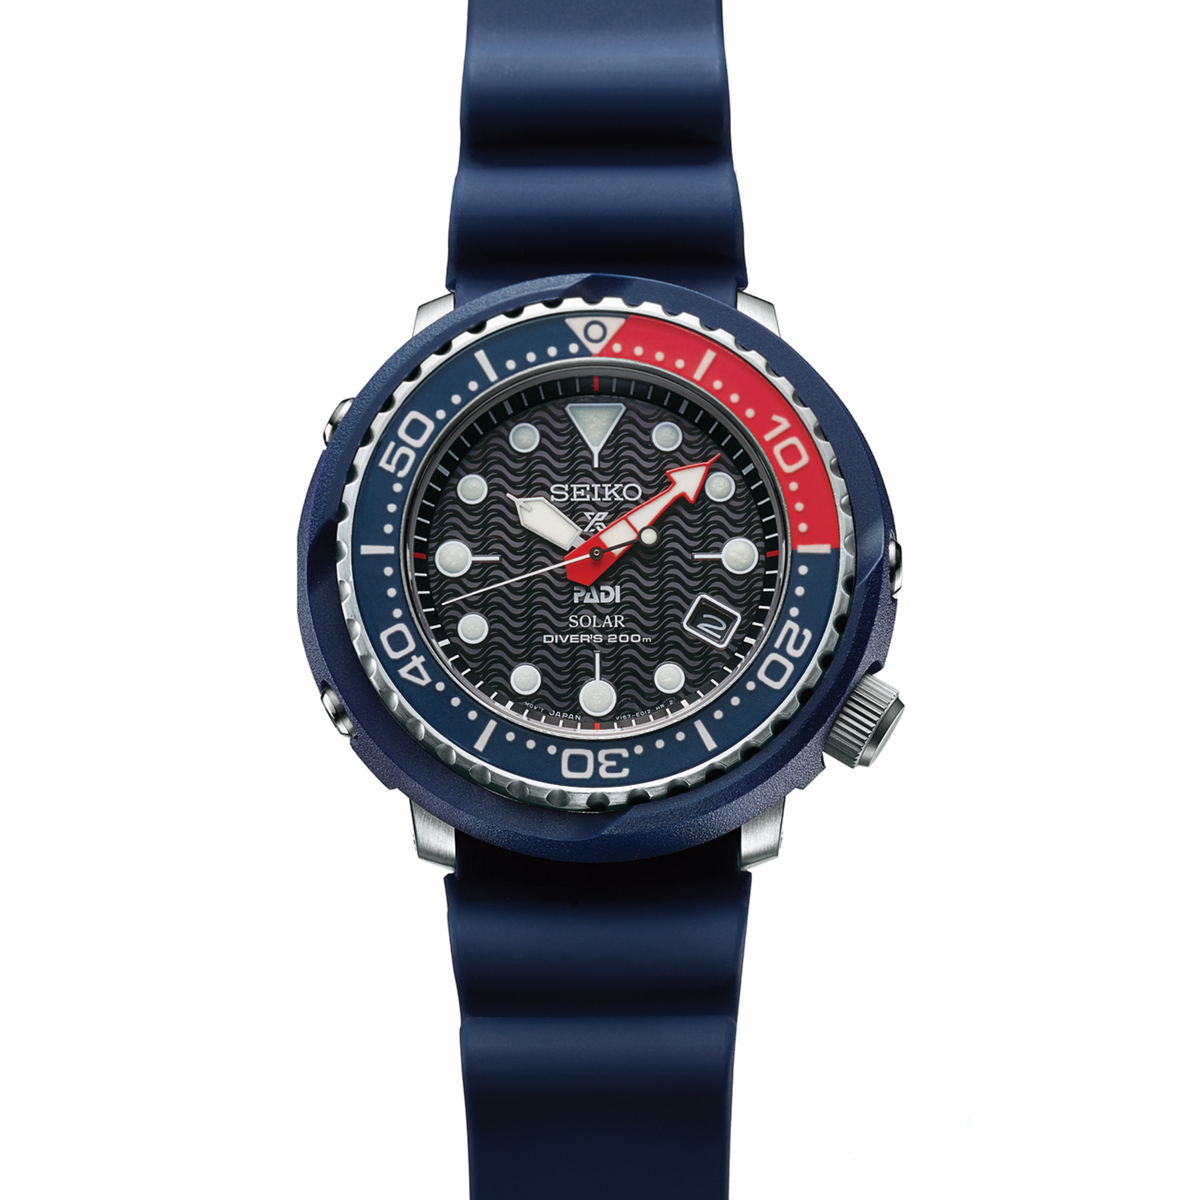 Seiko Prospex PADI - Solar Tuna Dive Watch